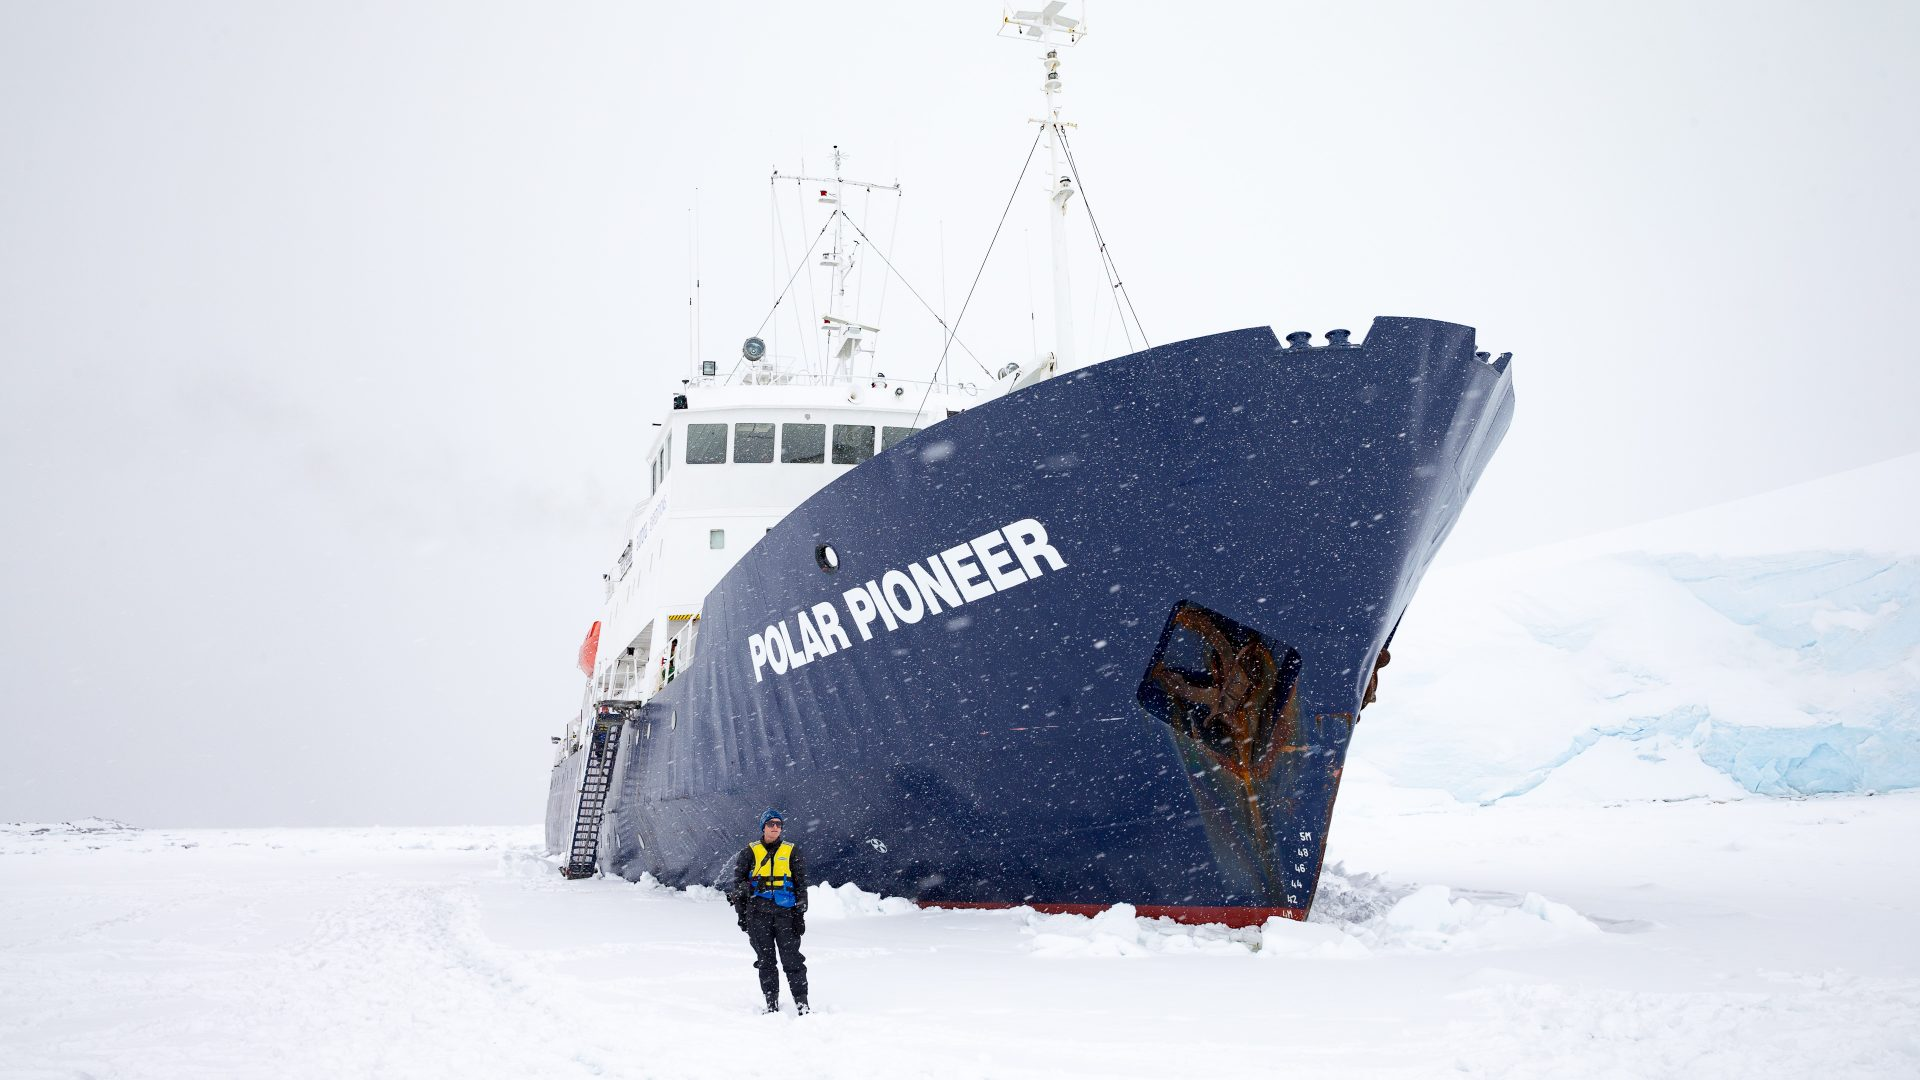 The photographer in front of the Polar Pioneer ship in Antarctica.